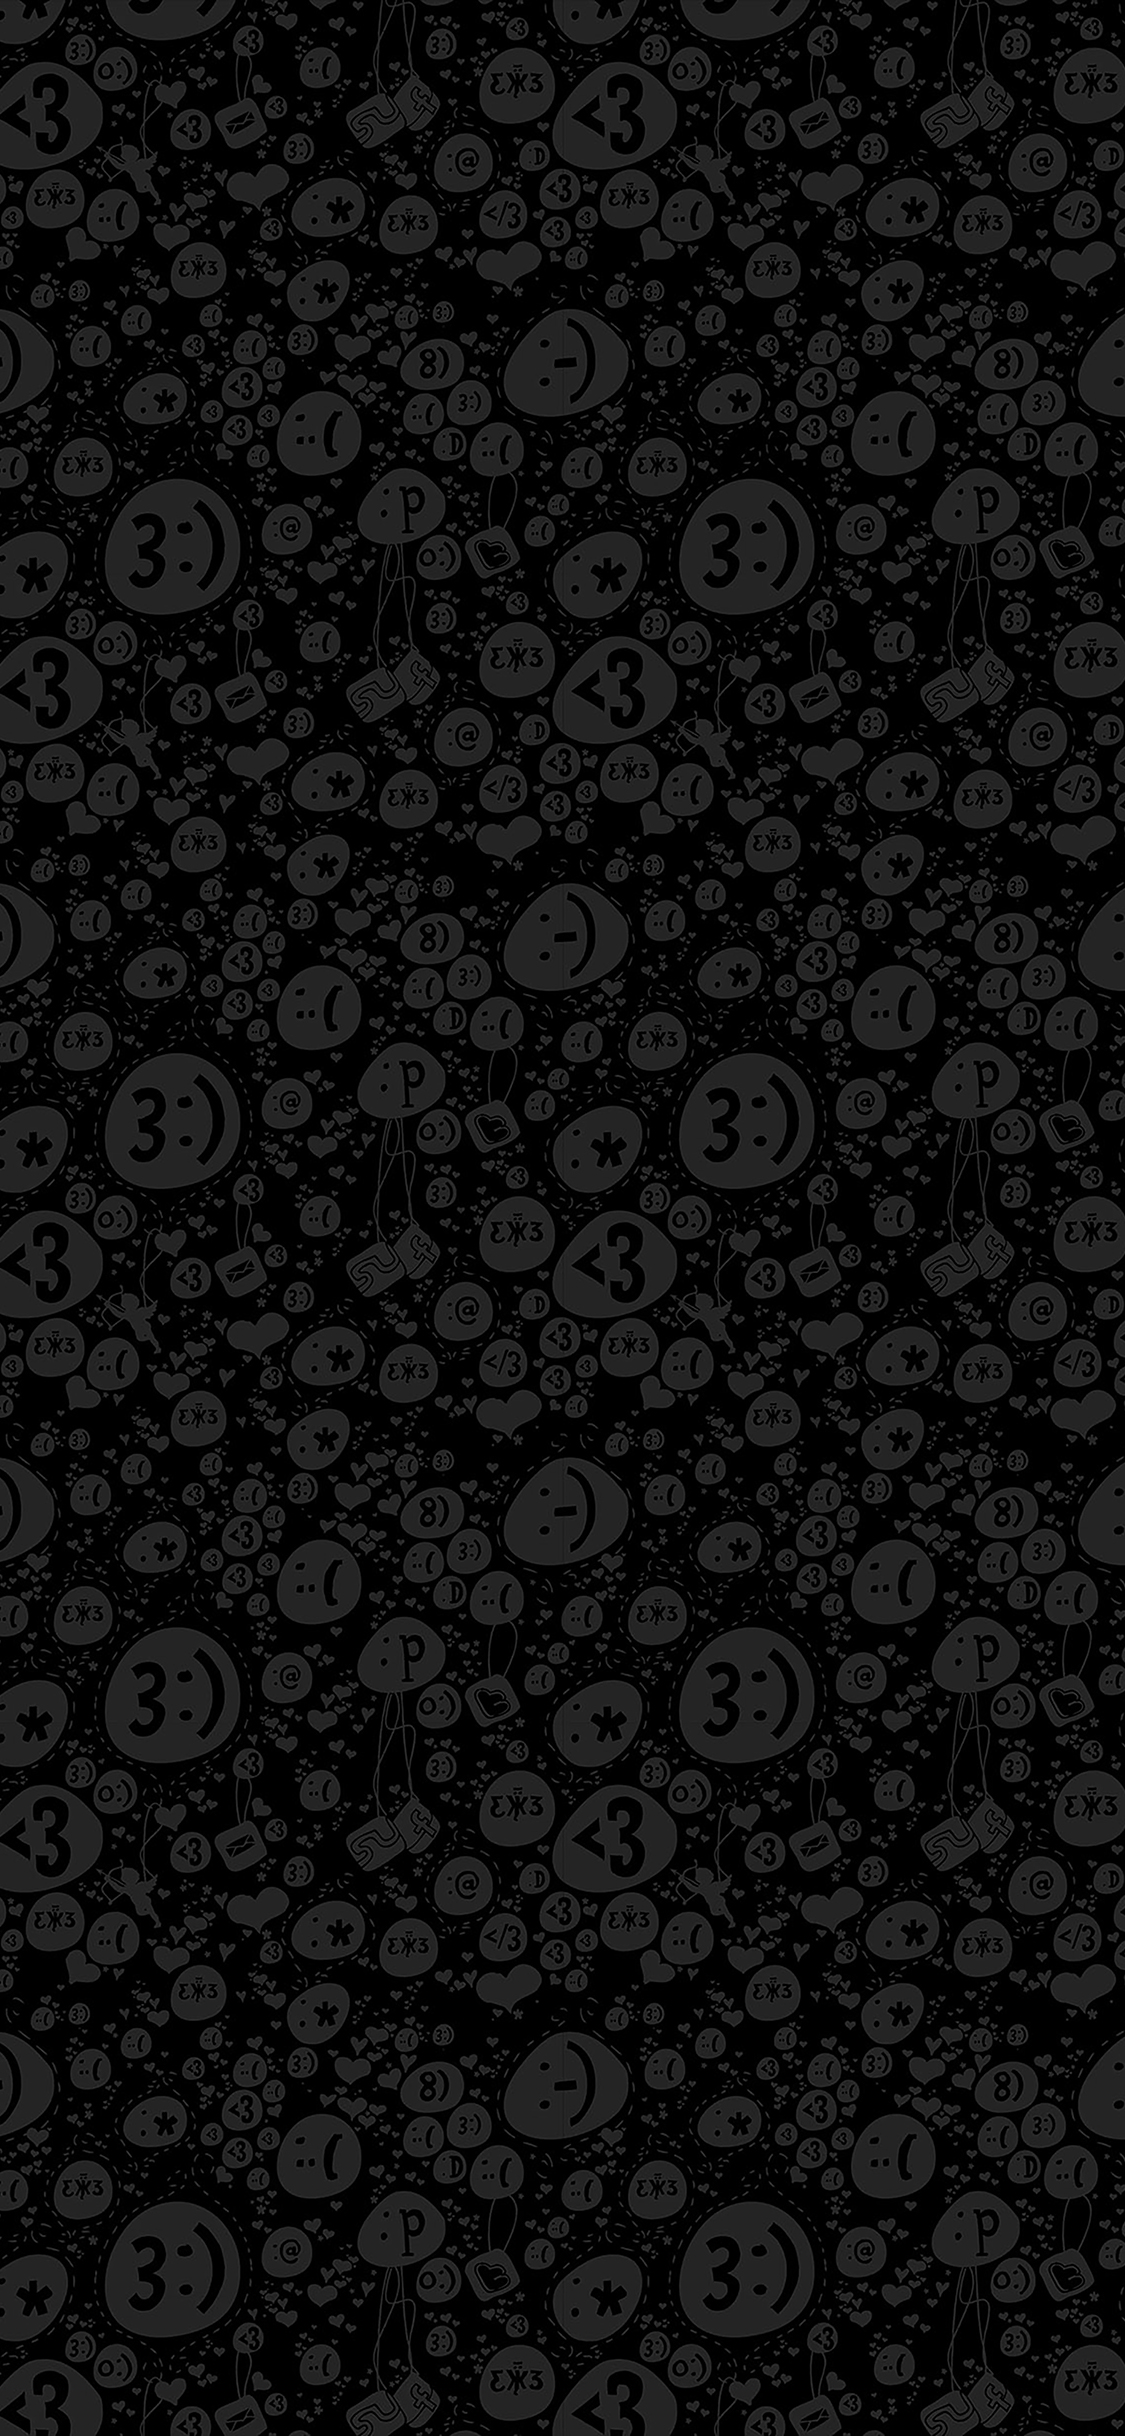 iPhoneXpapers.com-Apple-iPhone-wallpaper-va81-wallpaper-emoticon-charms-bw-pattern